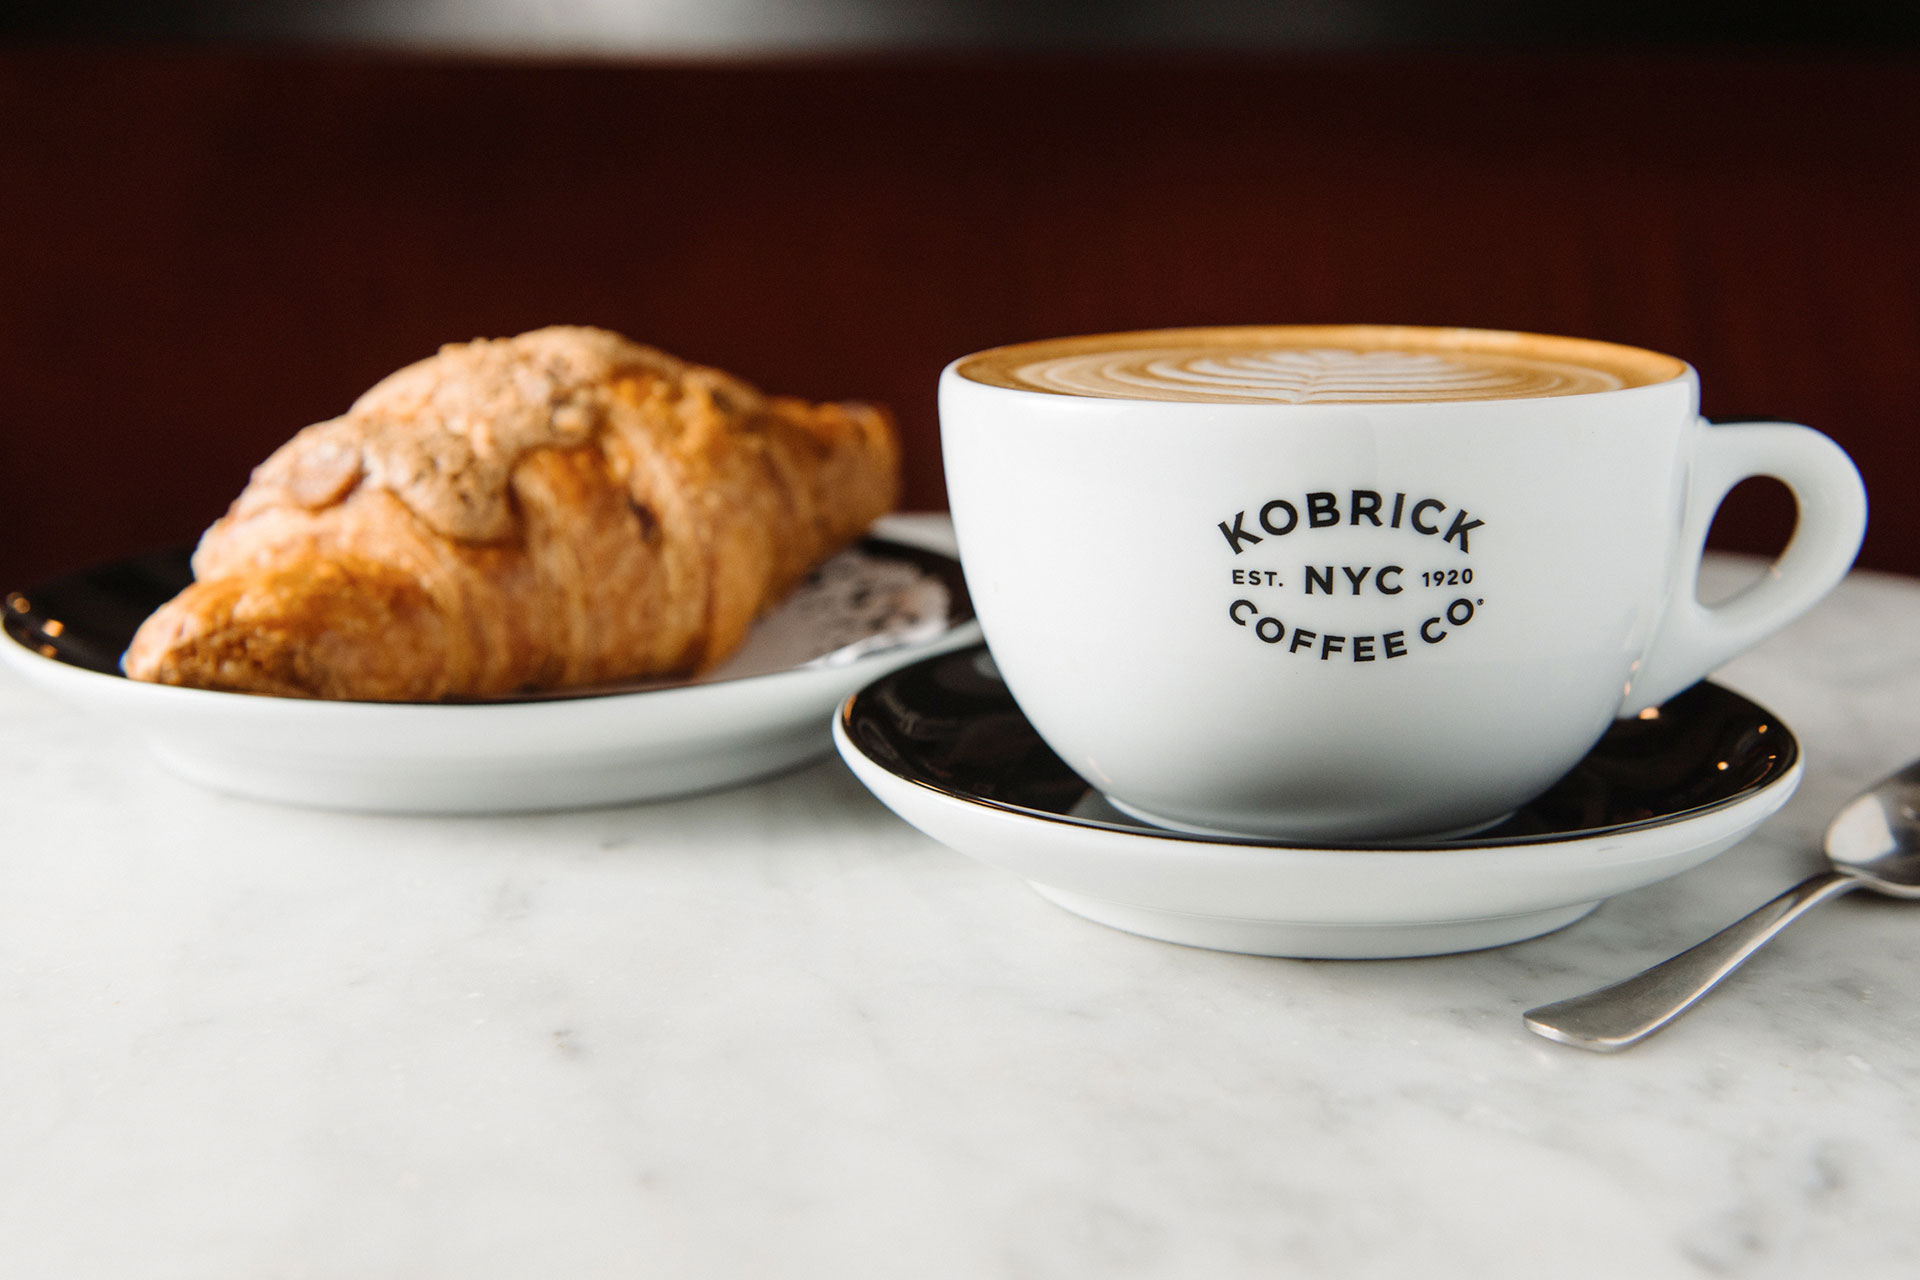 Kobrick Coffee 24 Ninth Ave NYC